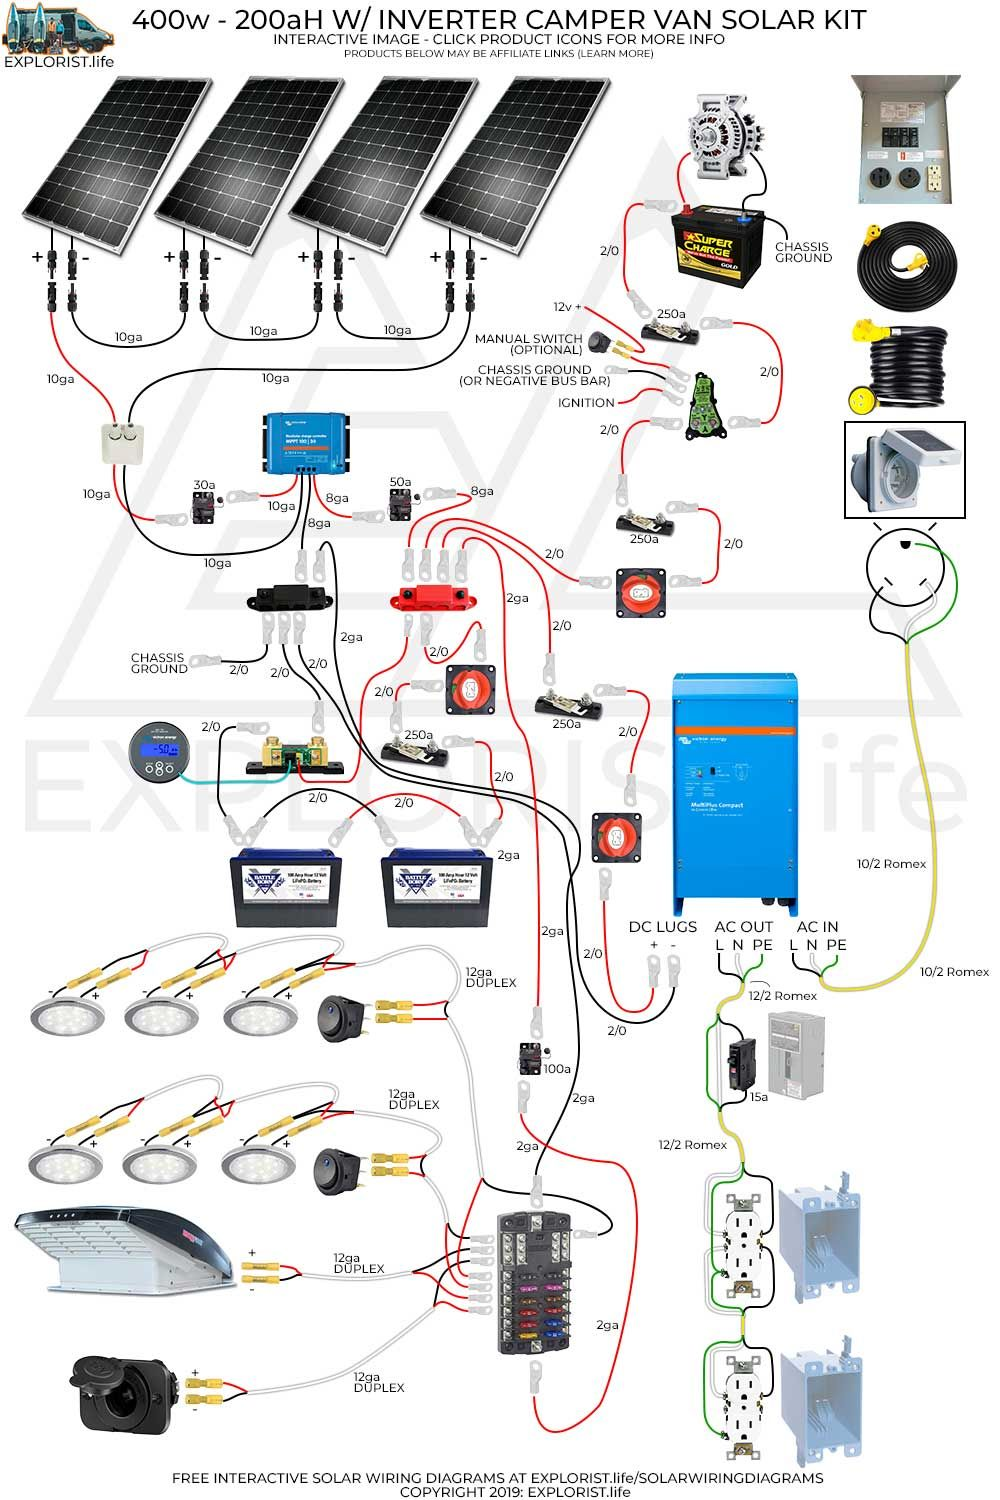 small resolution of interactive diy solar wiring diagrams for campers van s rv s interactive home wiring diagram interactive